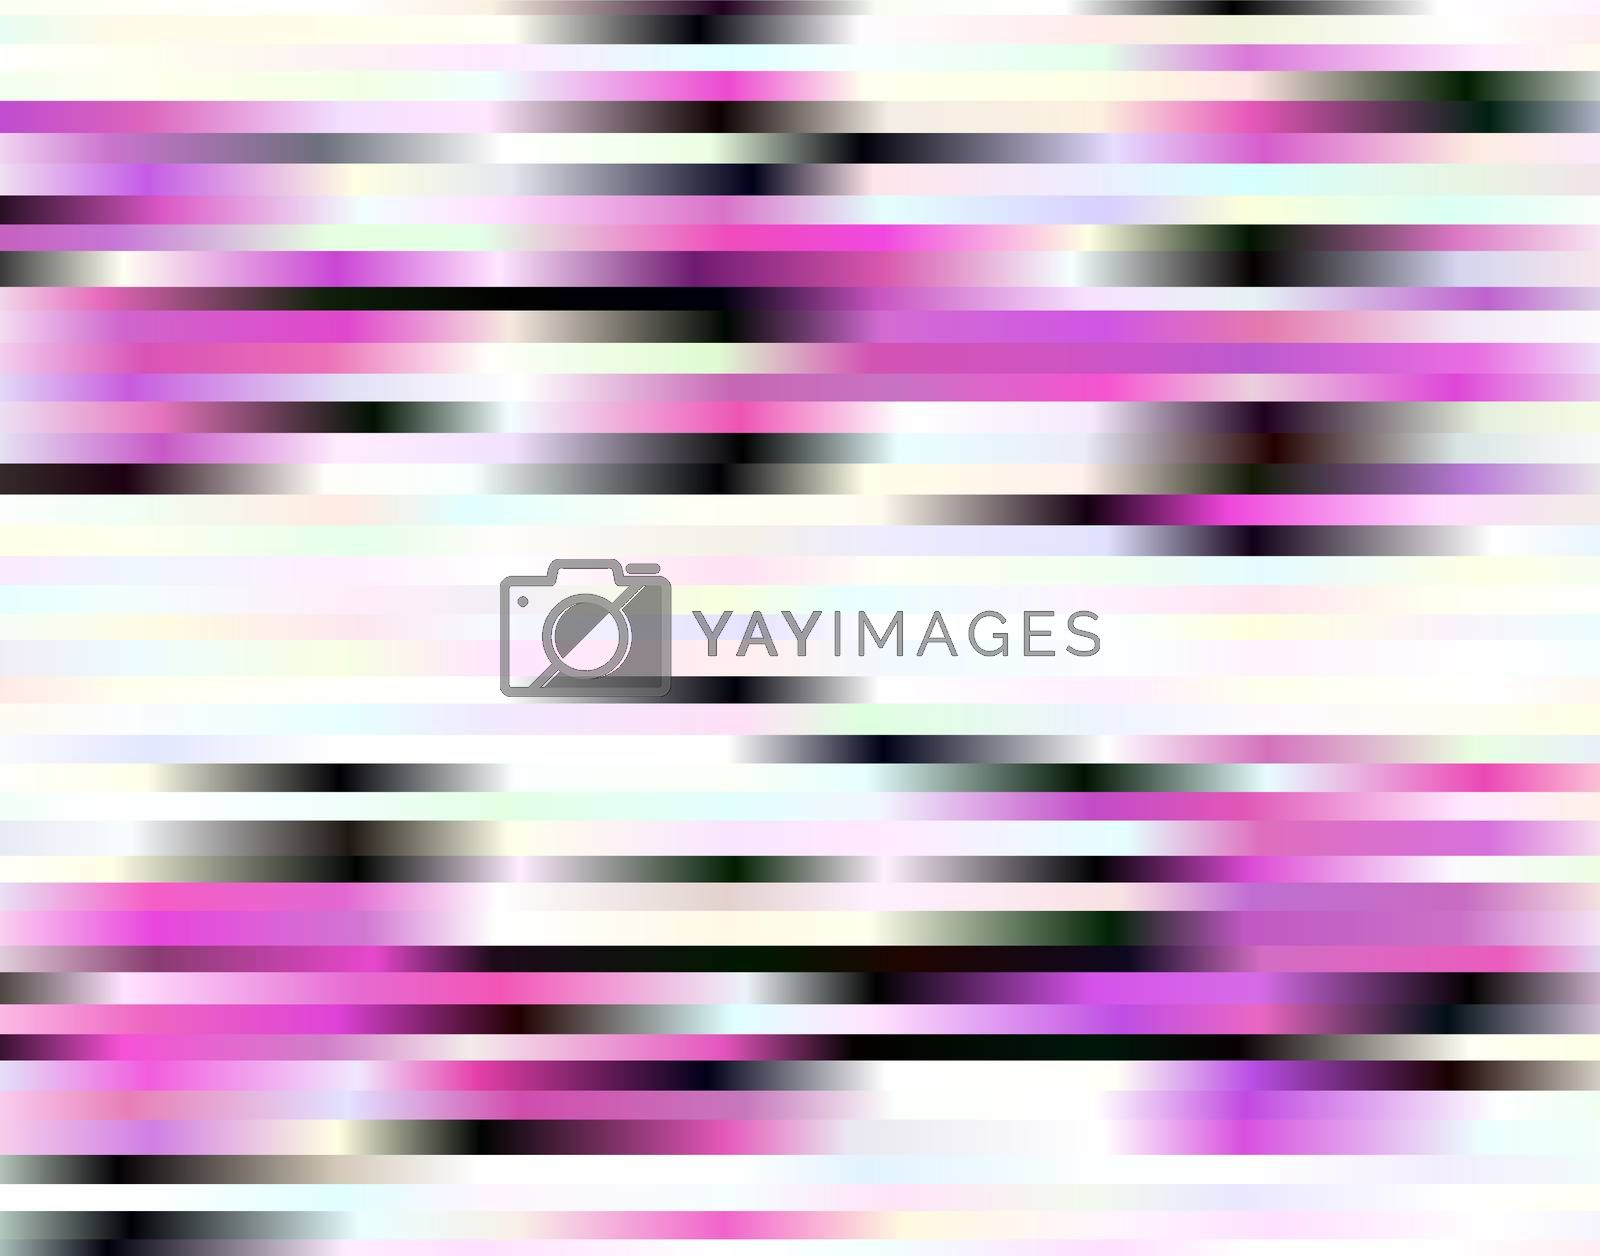 Abstract magenta, black and white horizontal stripes background